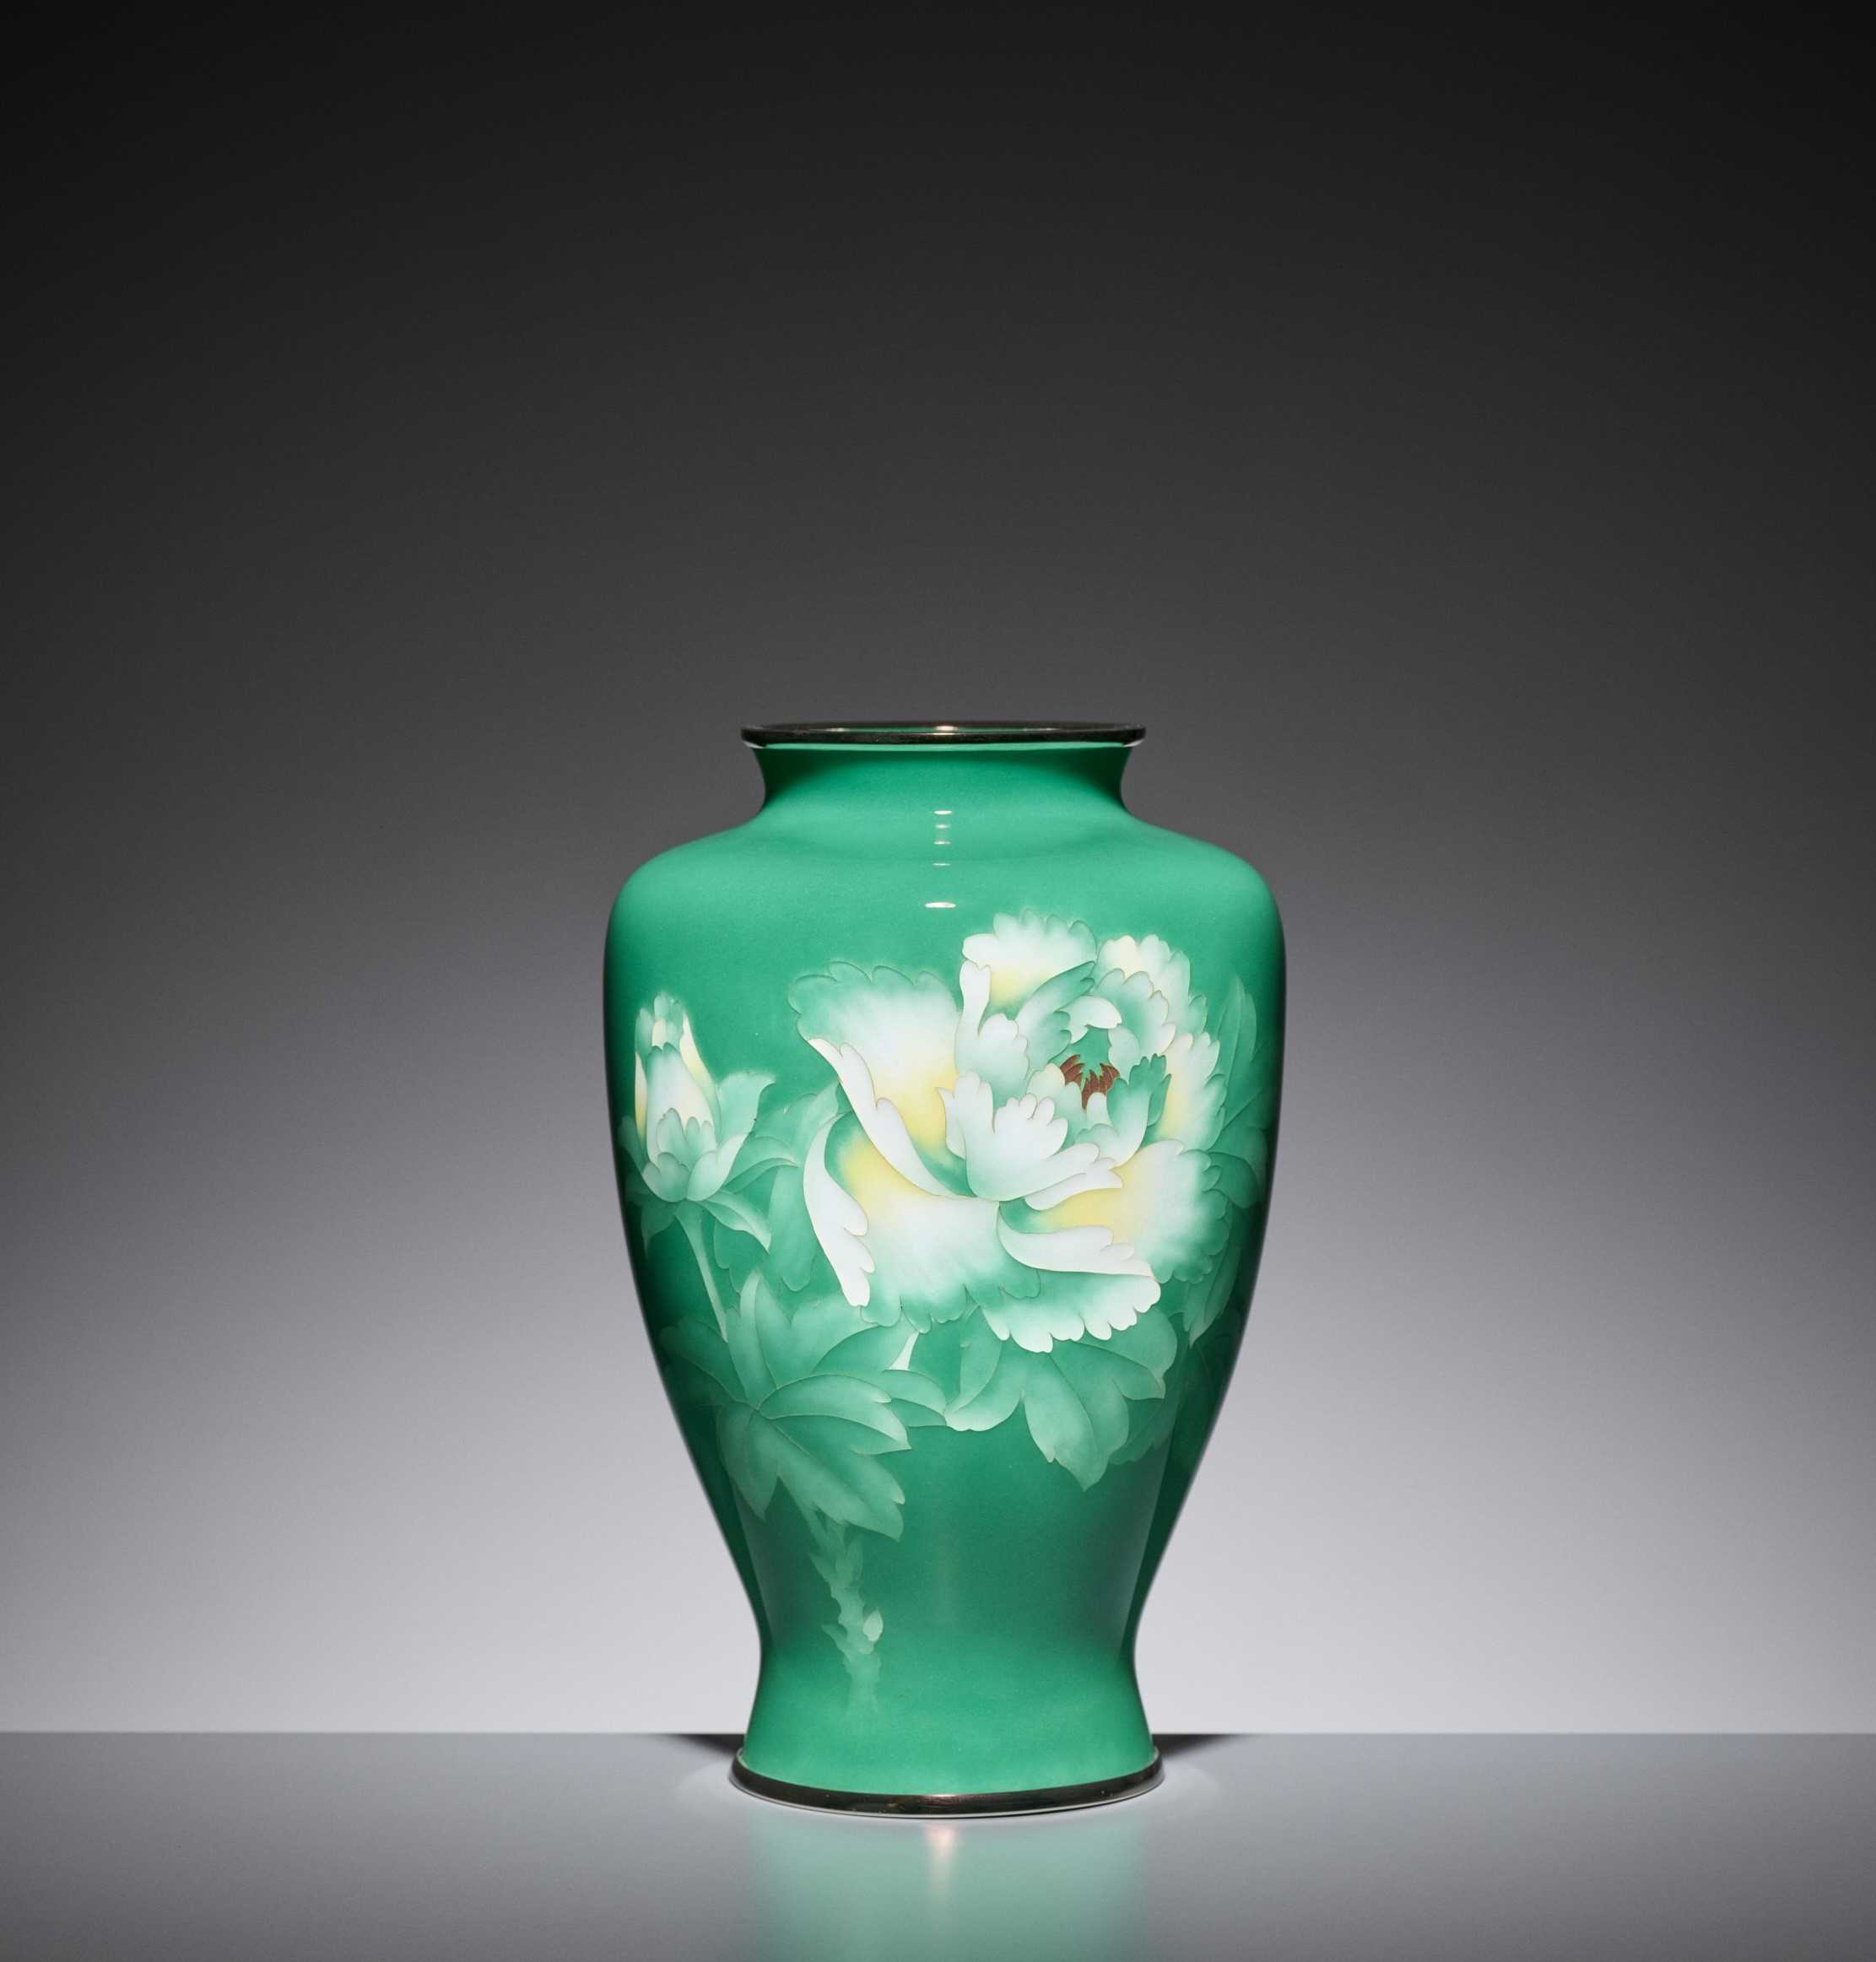 AN EMERALD GREEN CLOISONNÉ ENAMEL VASE WITH PEONY, ATTRIBUTED TO THE WORKSHOP OF ANDO JUBEI